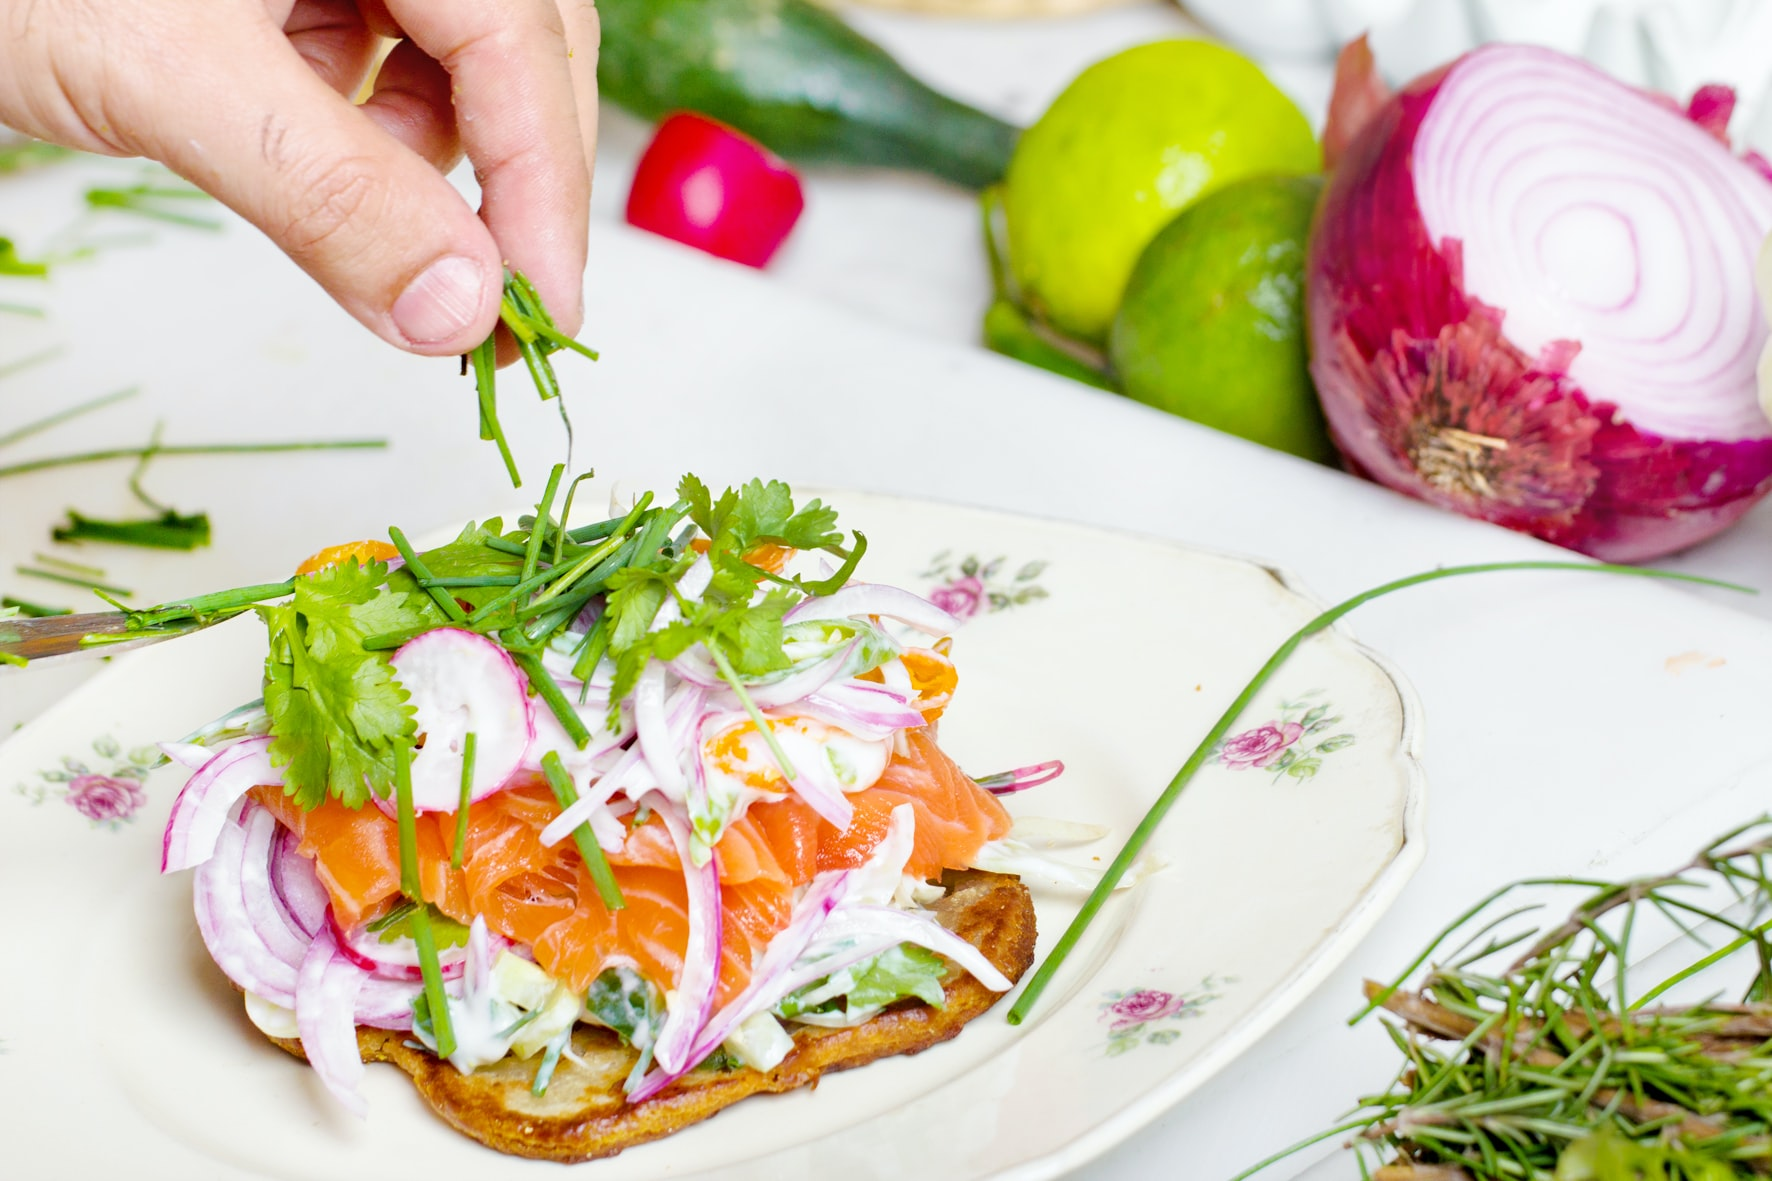 Photo of a sandwich with salmon, red onions and herbs